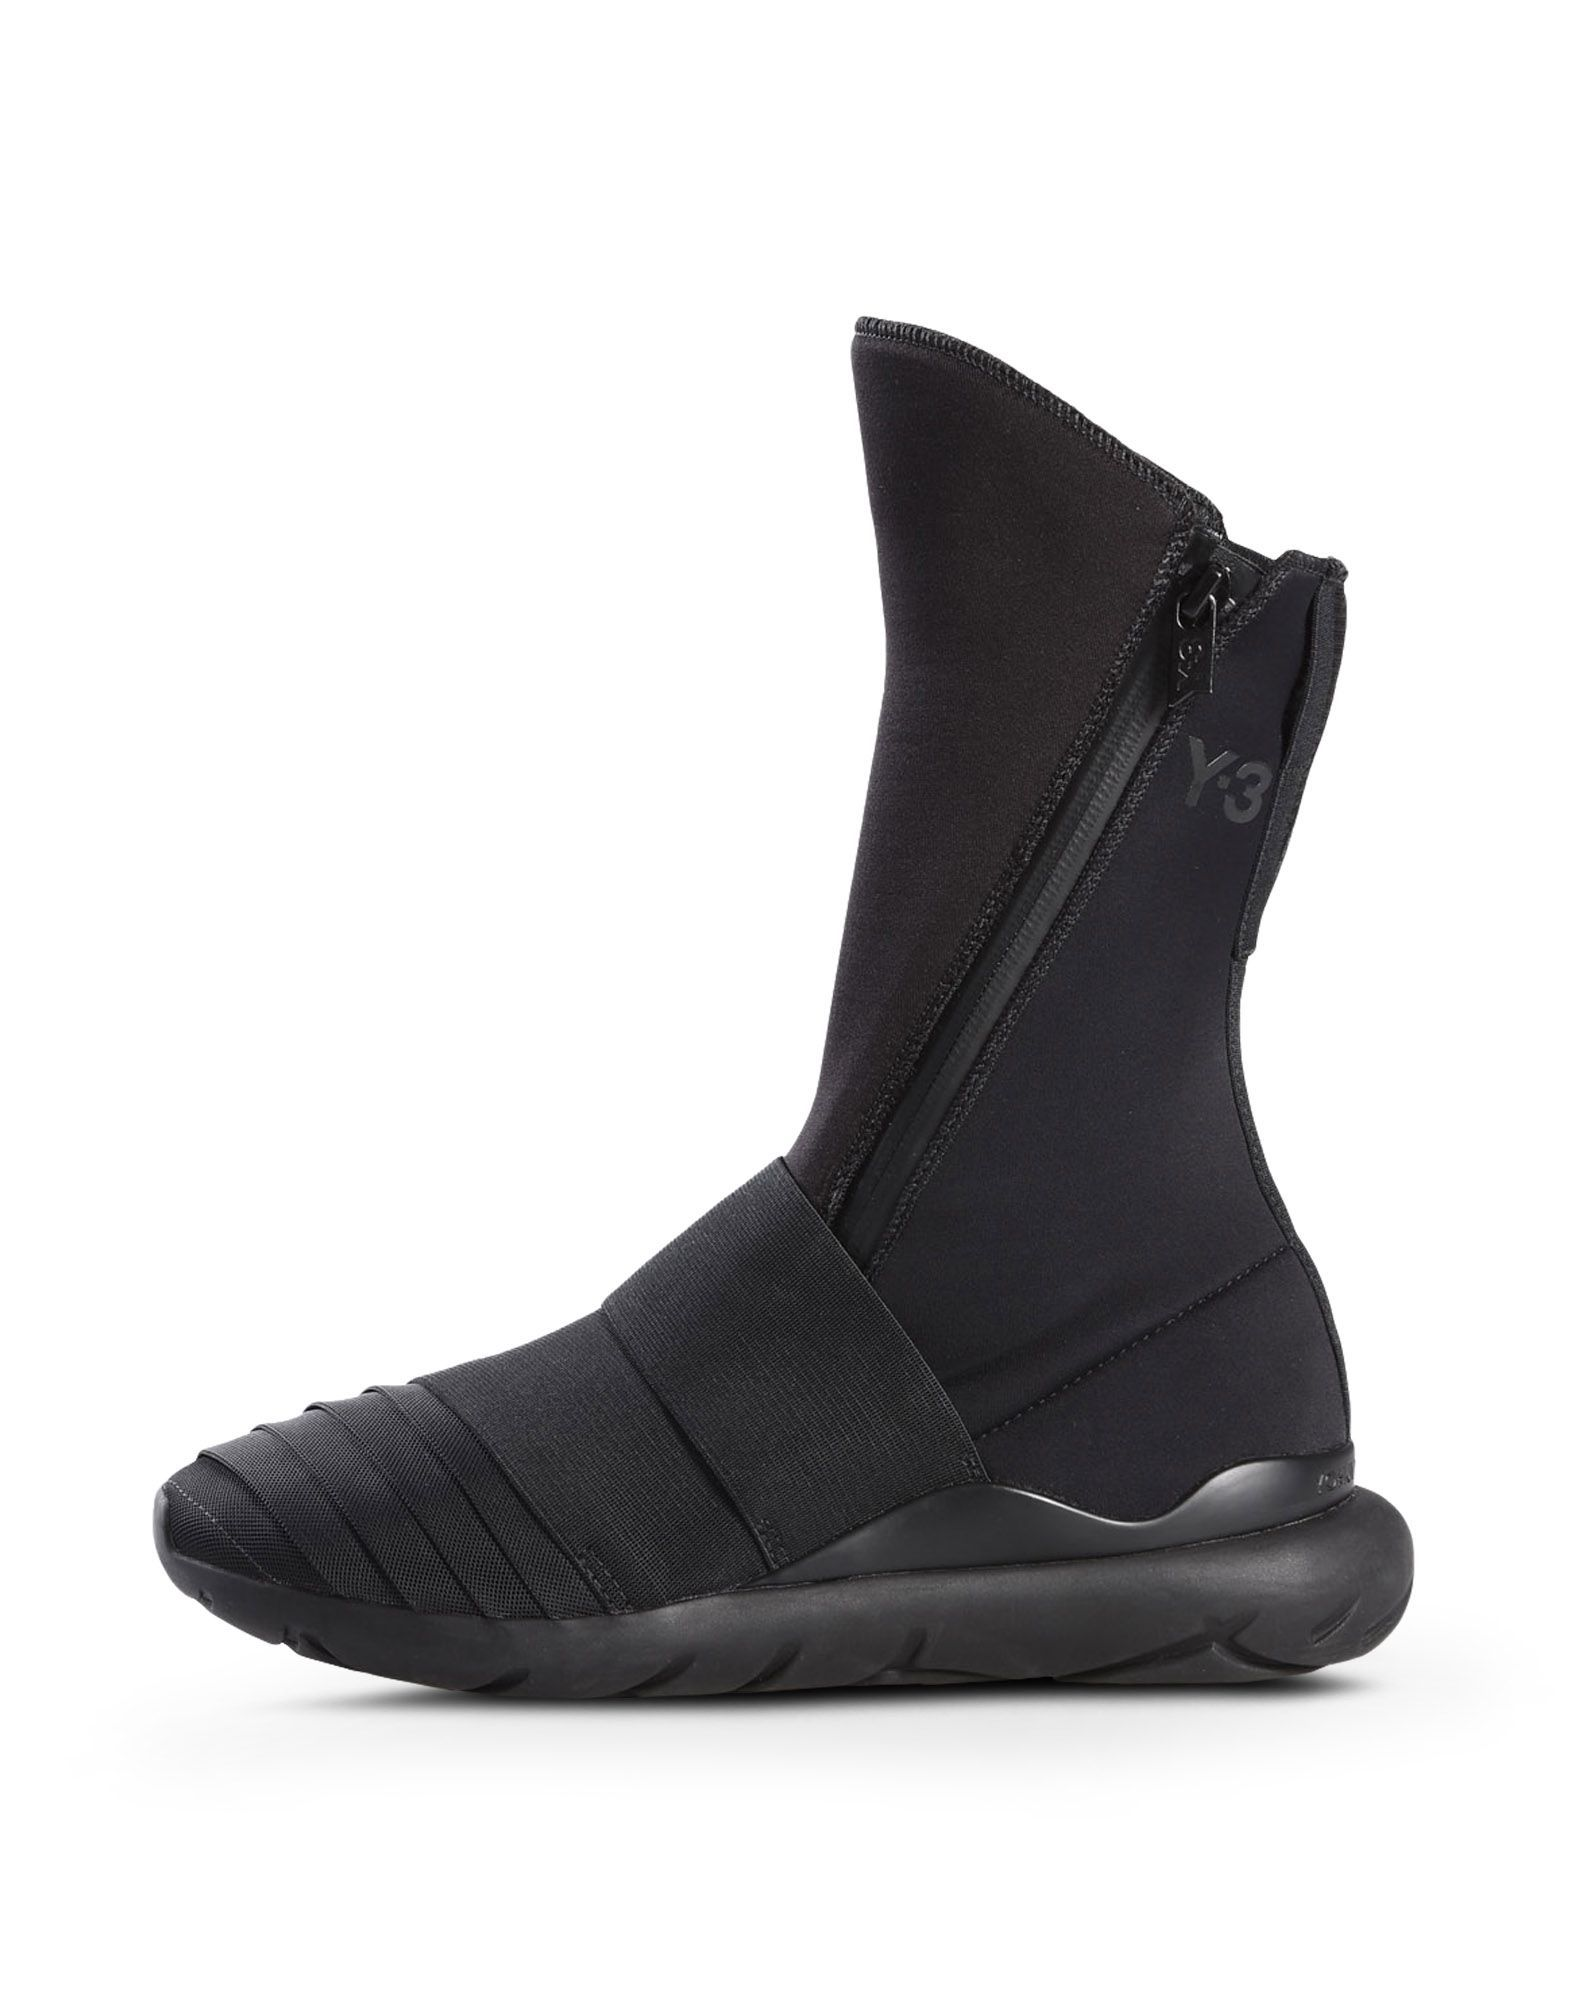 c06306736 Y-3 QASA ELLE BOOT SHOES woman Y-3 adidas